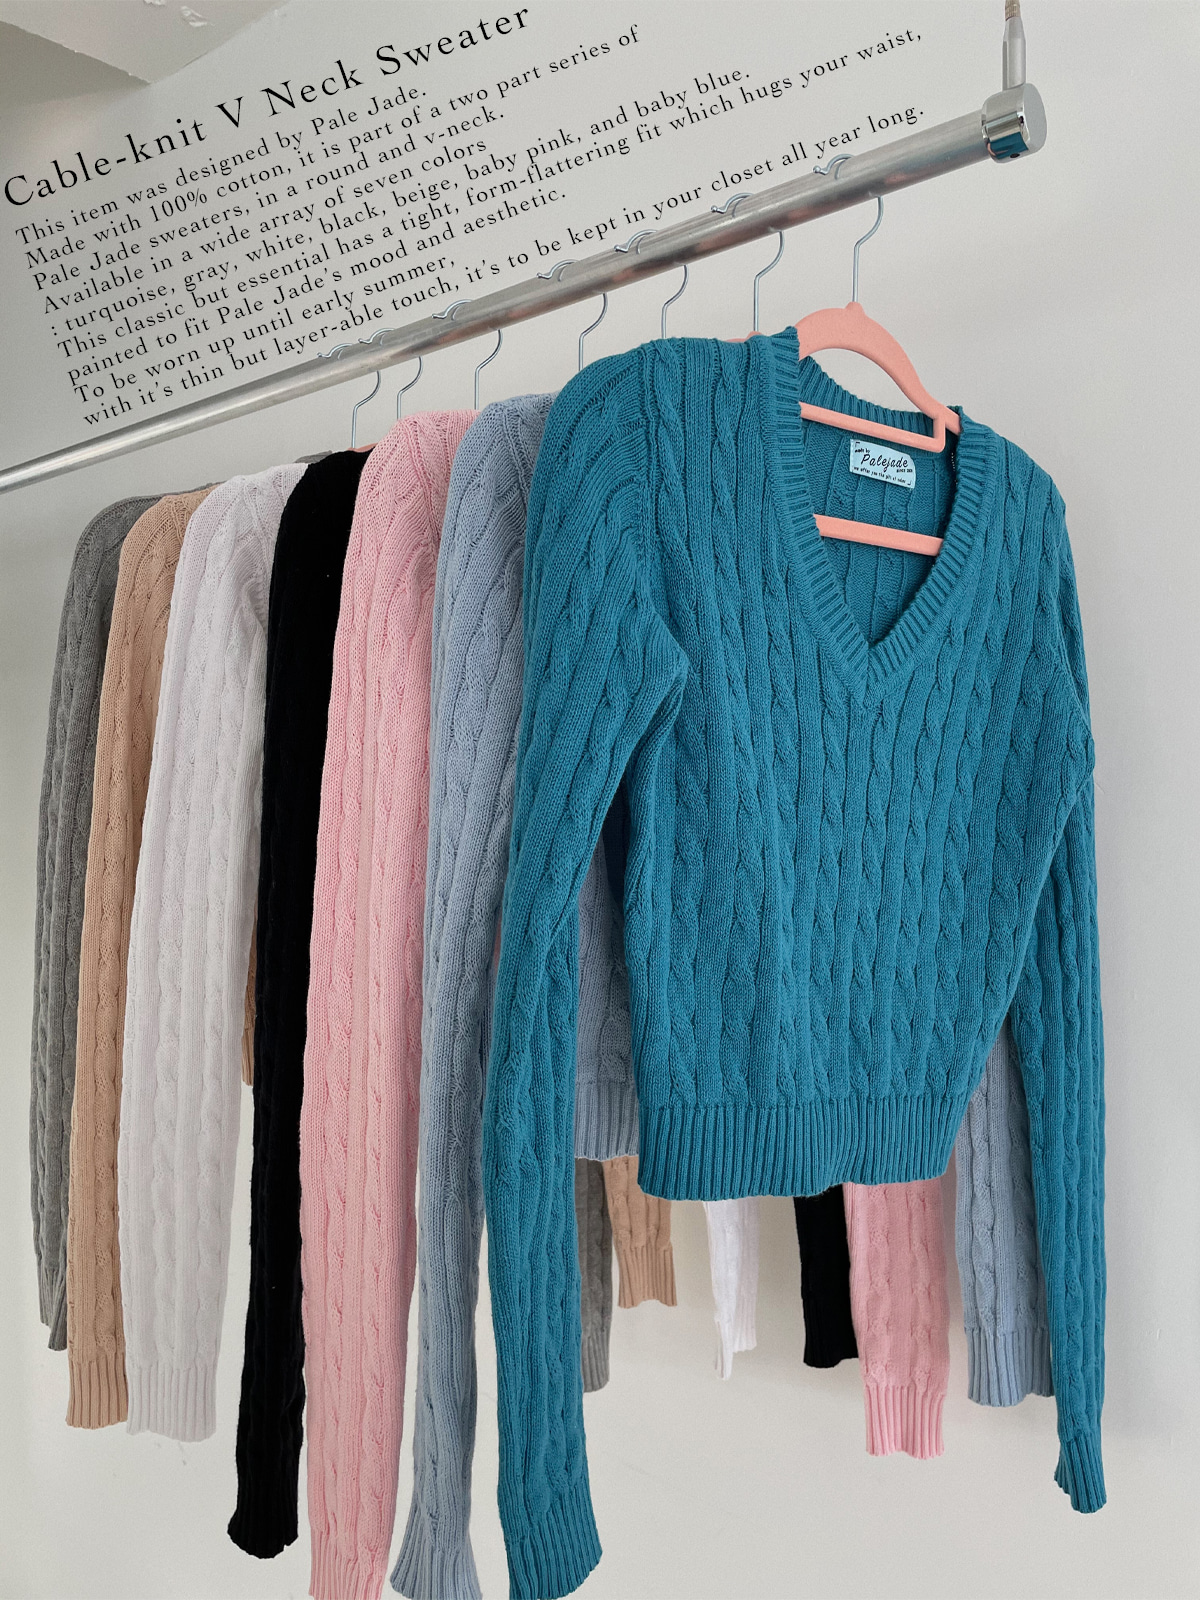 Cable Knit - Vv